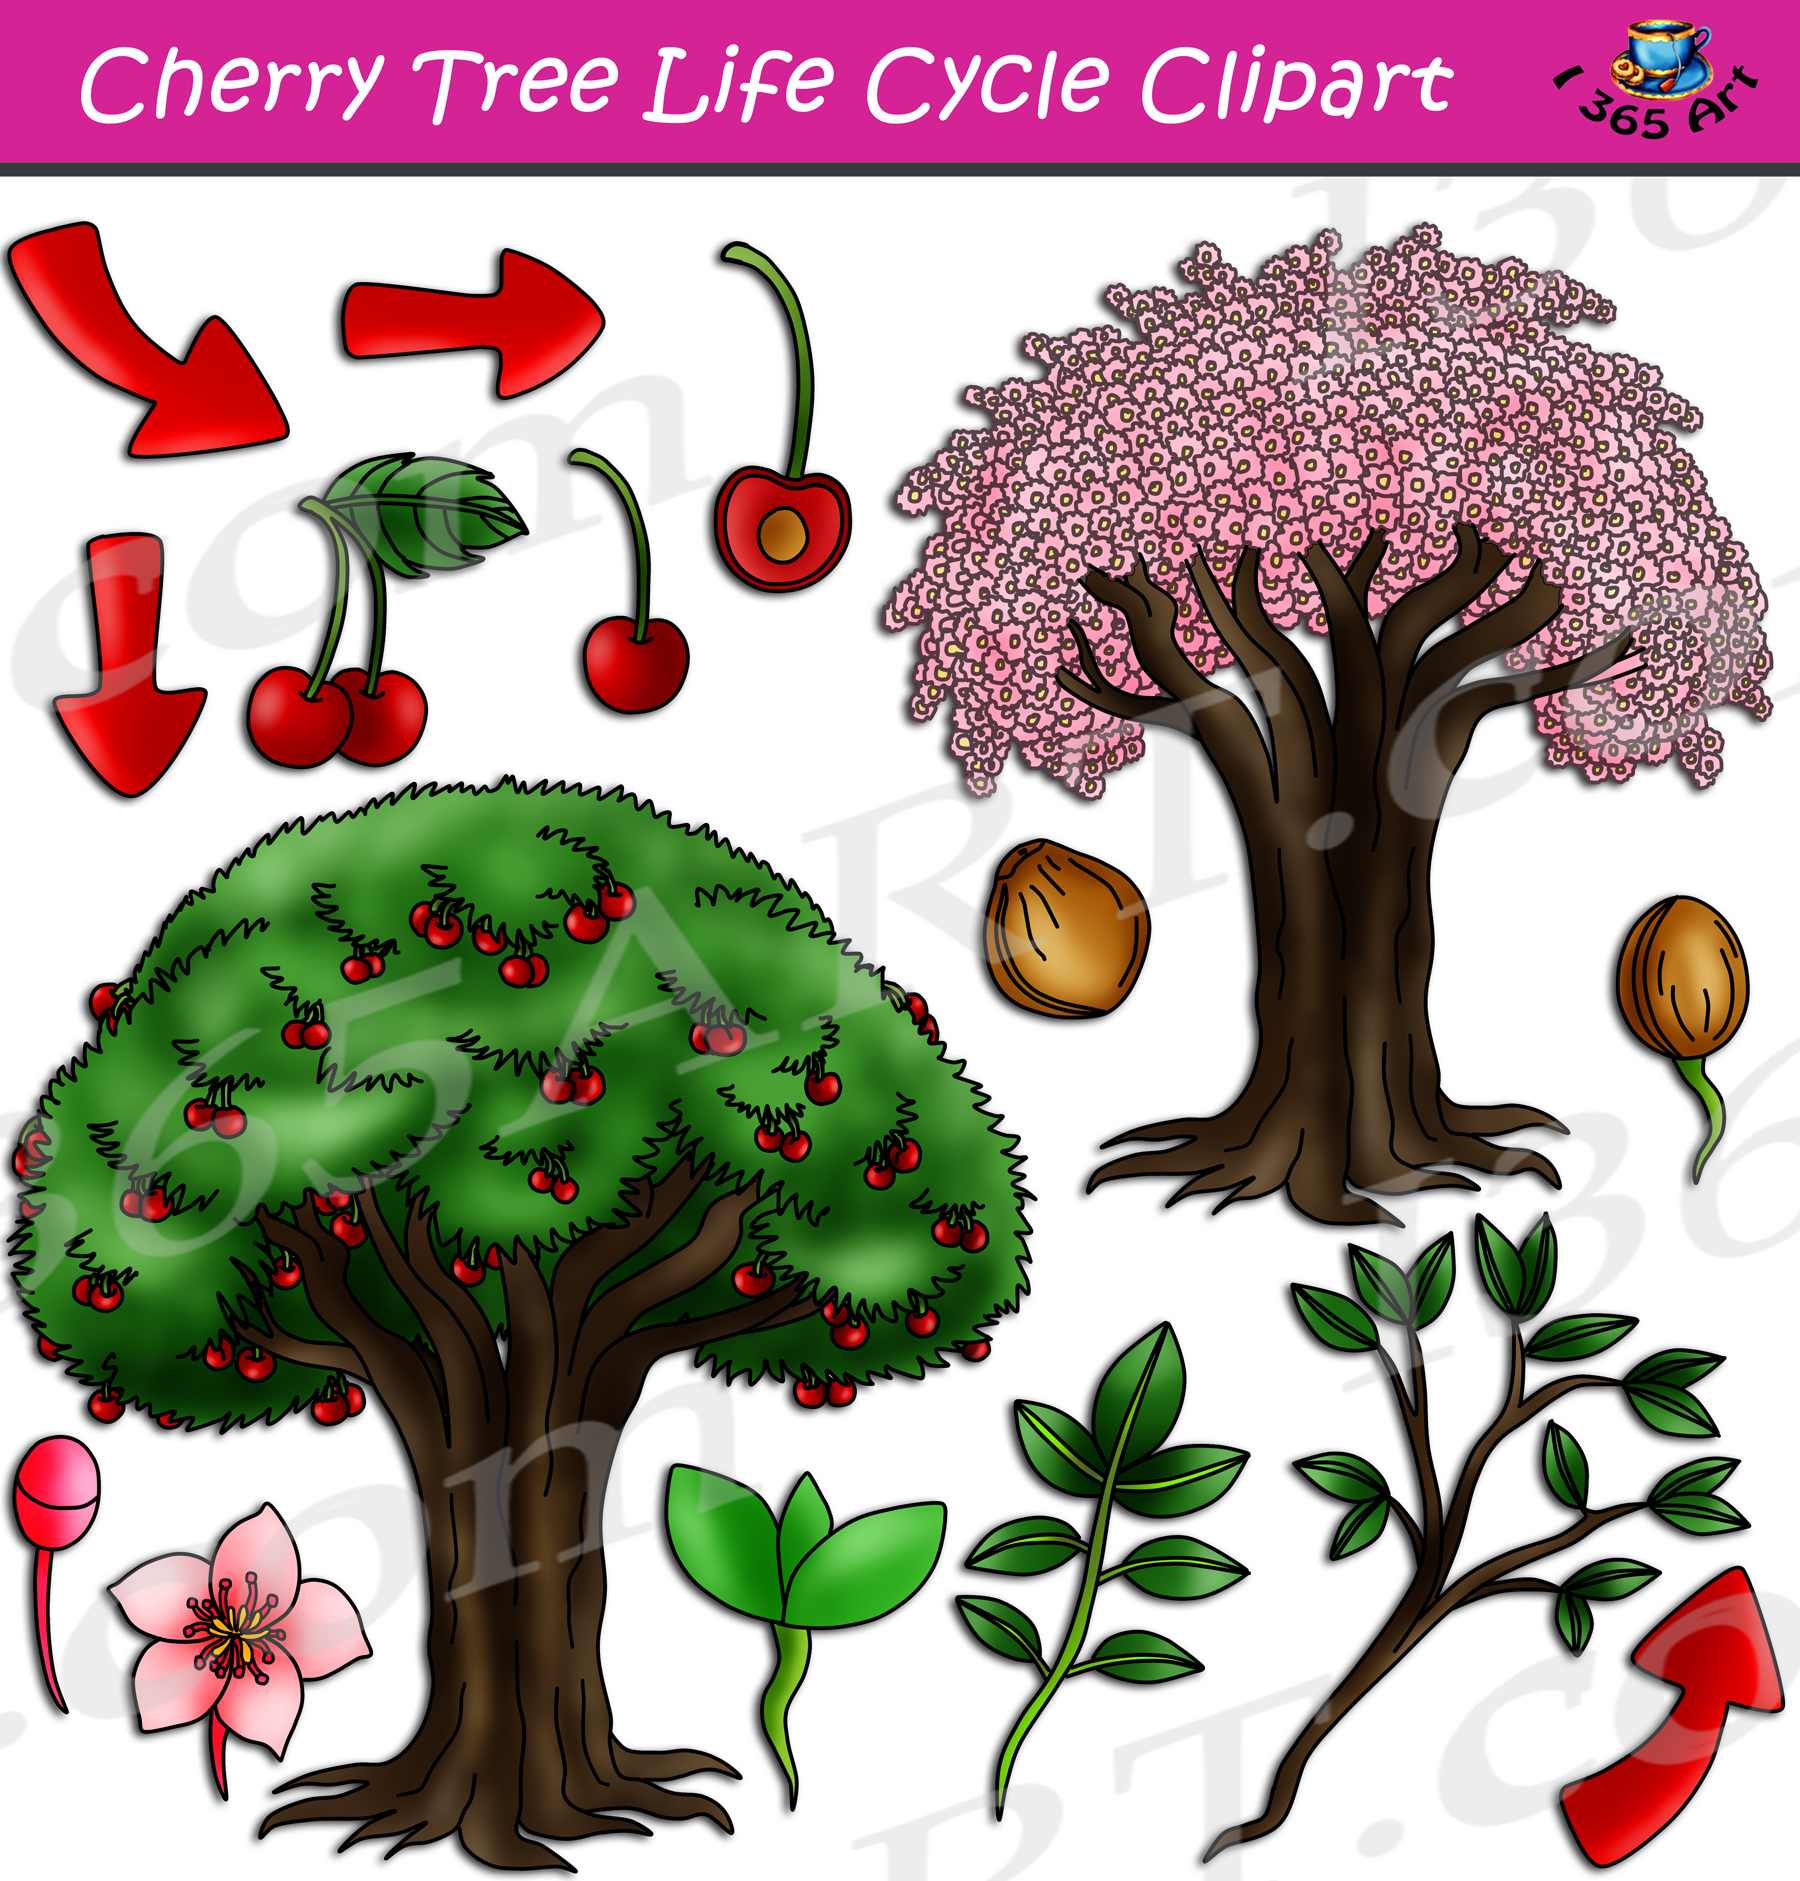 Cherrytree Life Cycle Clipart Set Download